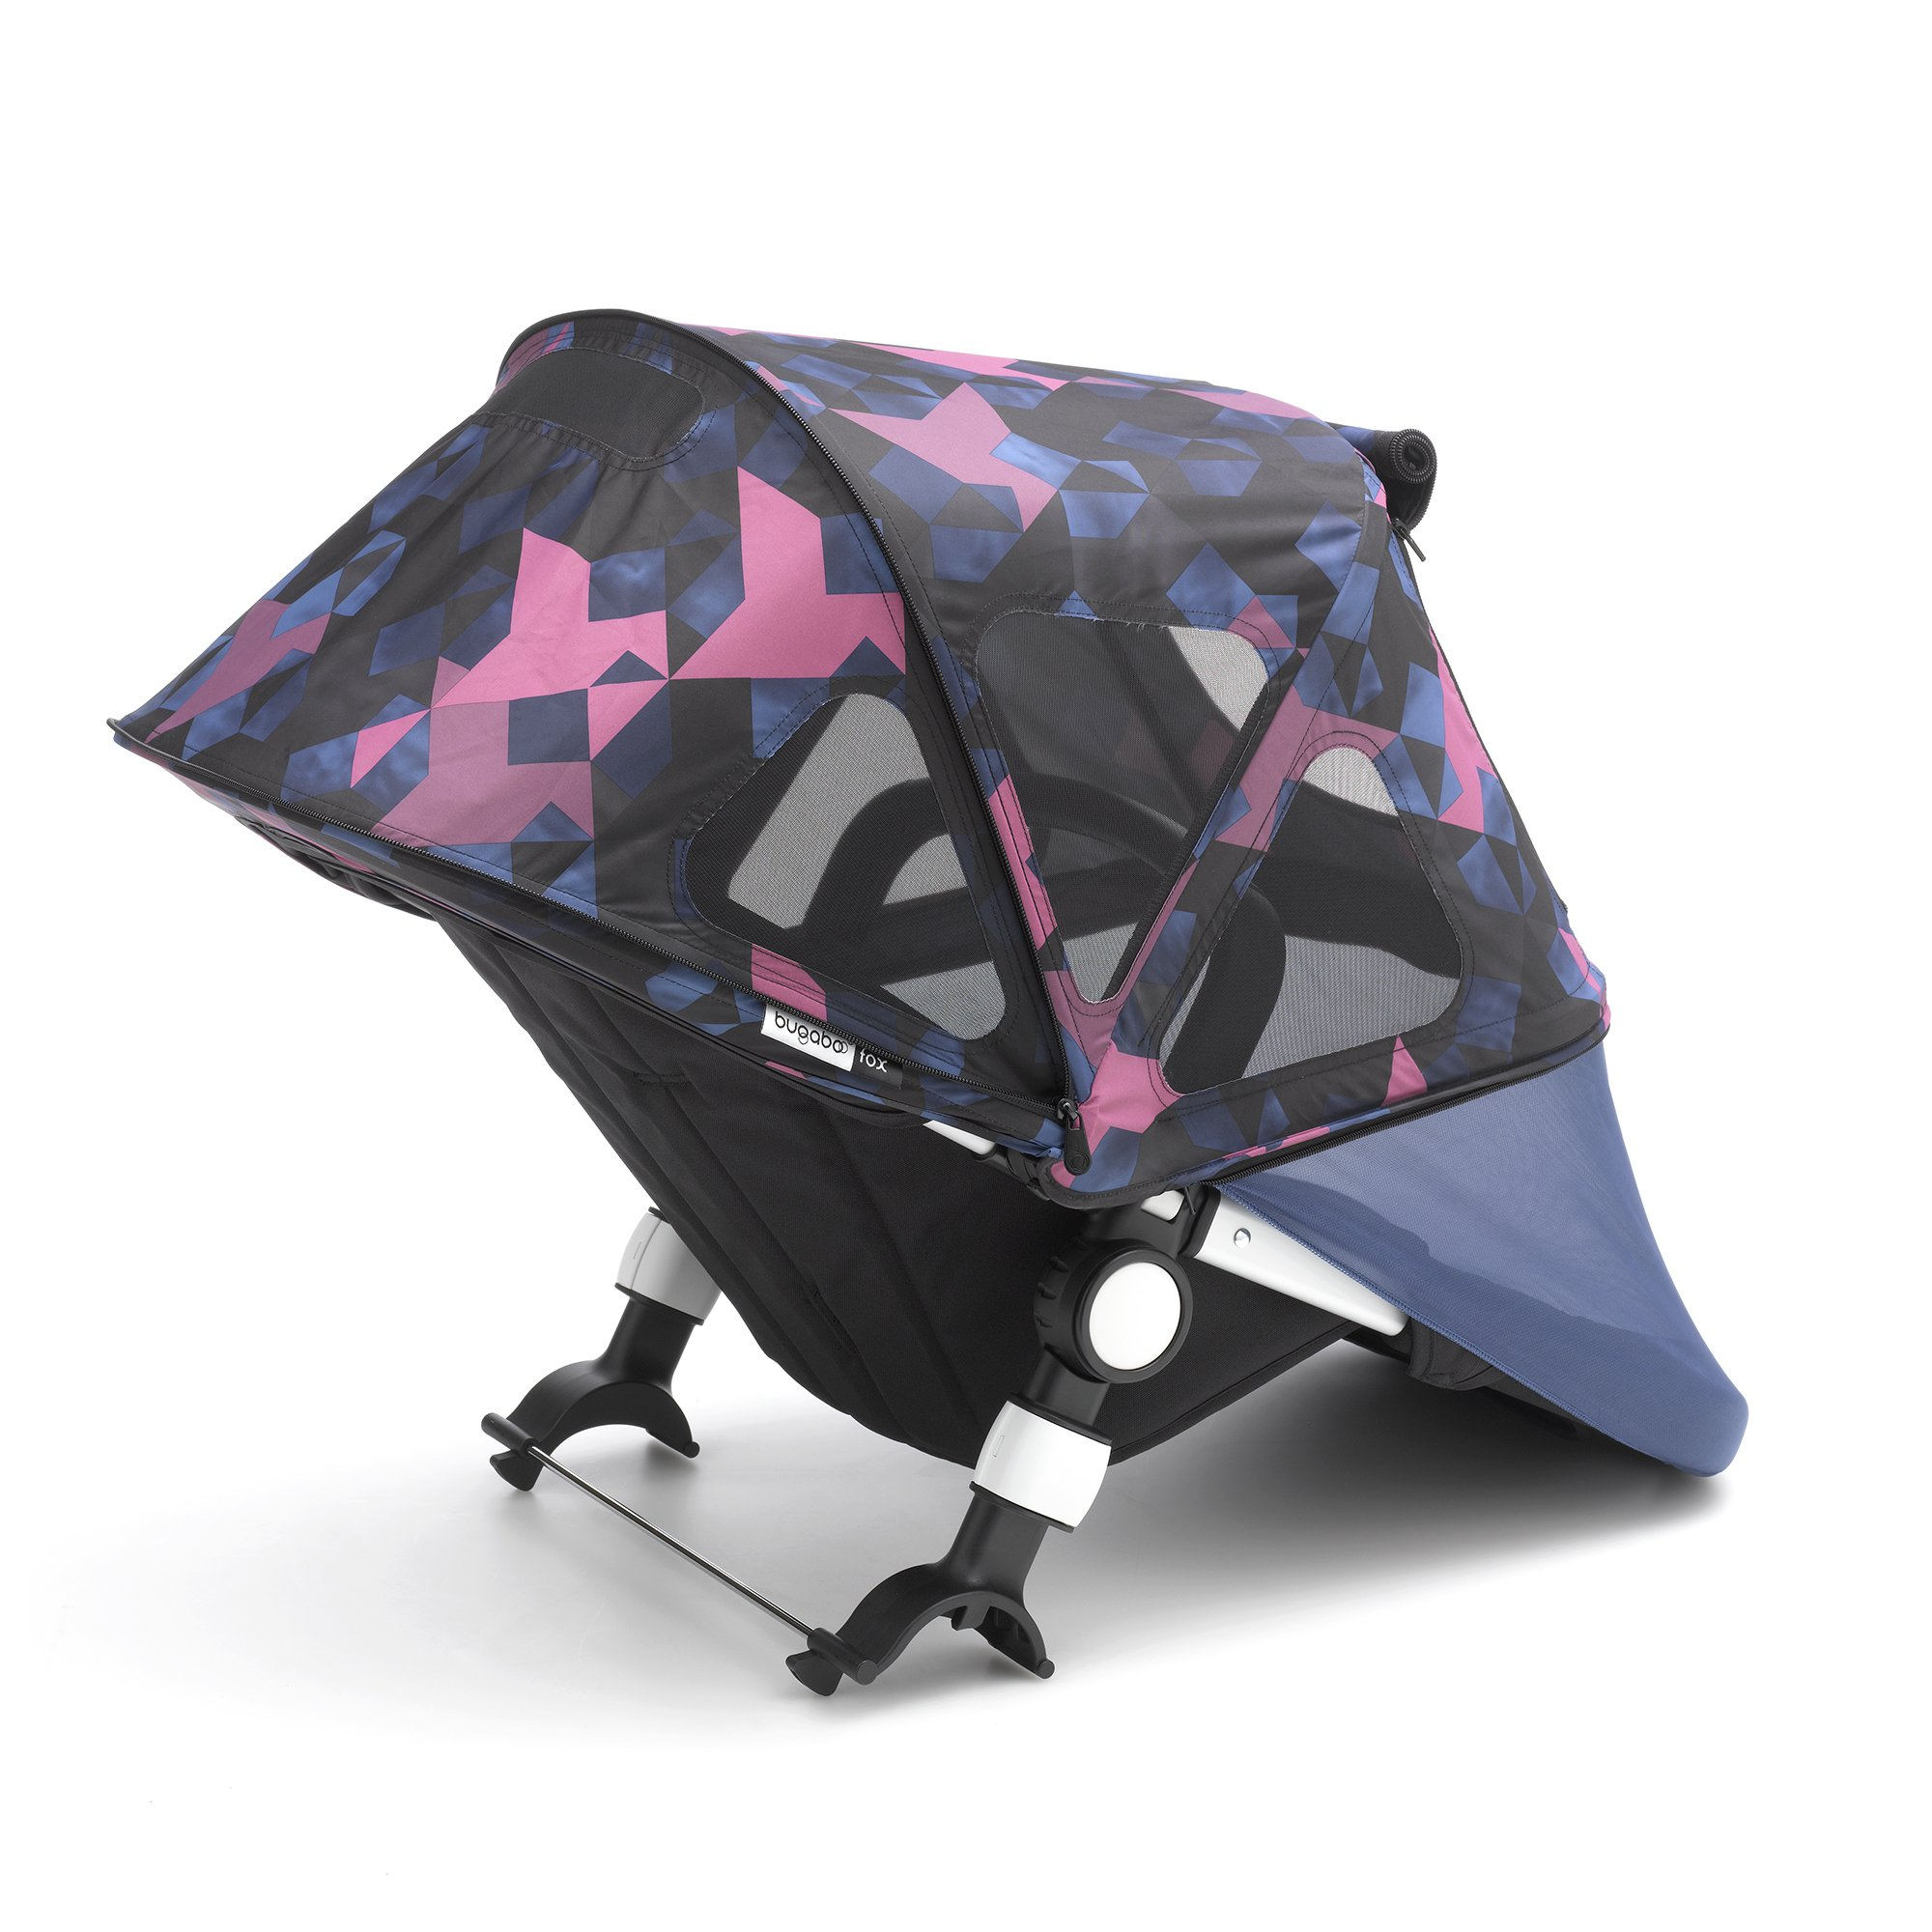 Bugaboo Fox And Cameleon3 Breezy Sun Canopy, Birds Print - Extendable Sun Canopy with UPF Sun Protection and Mesh Ventilation Panels